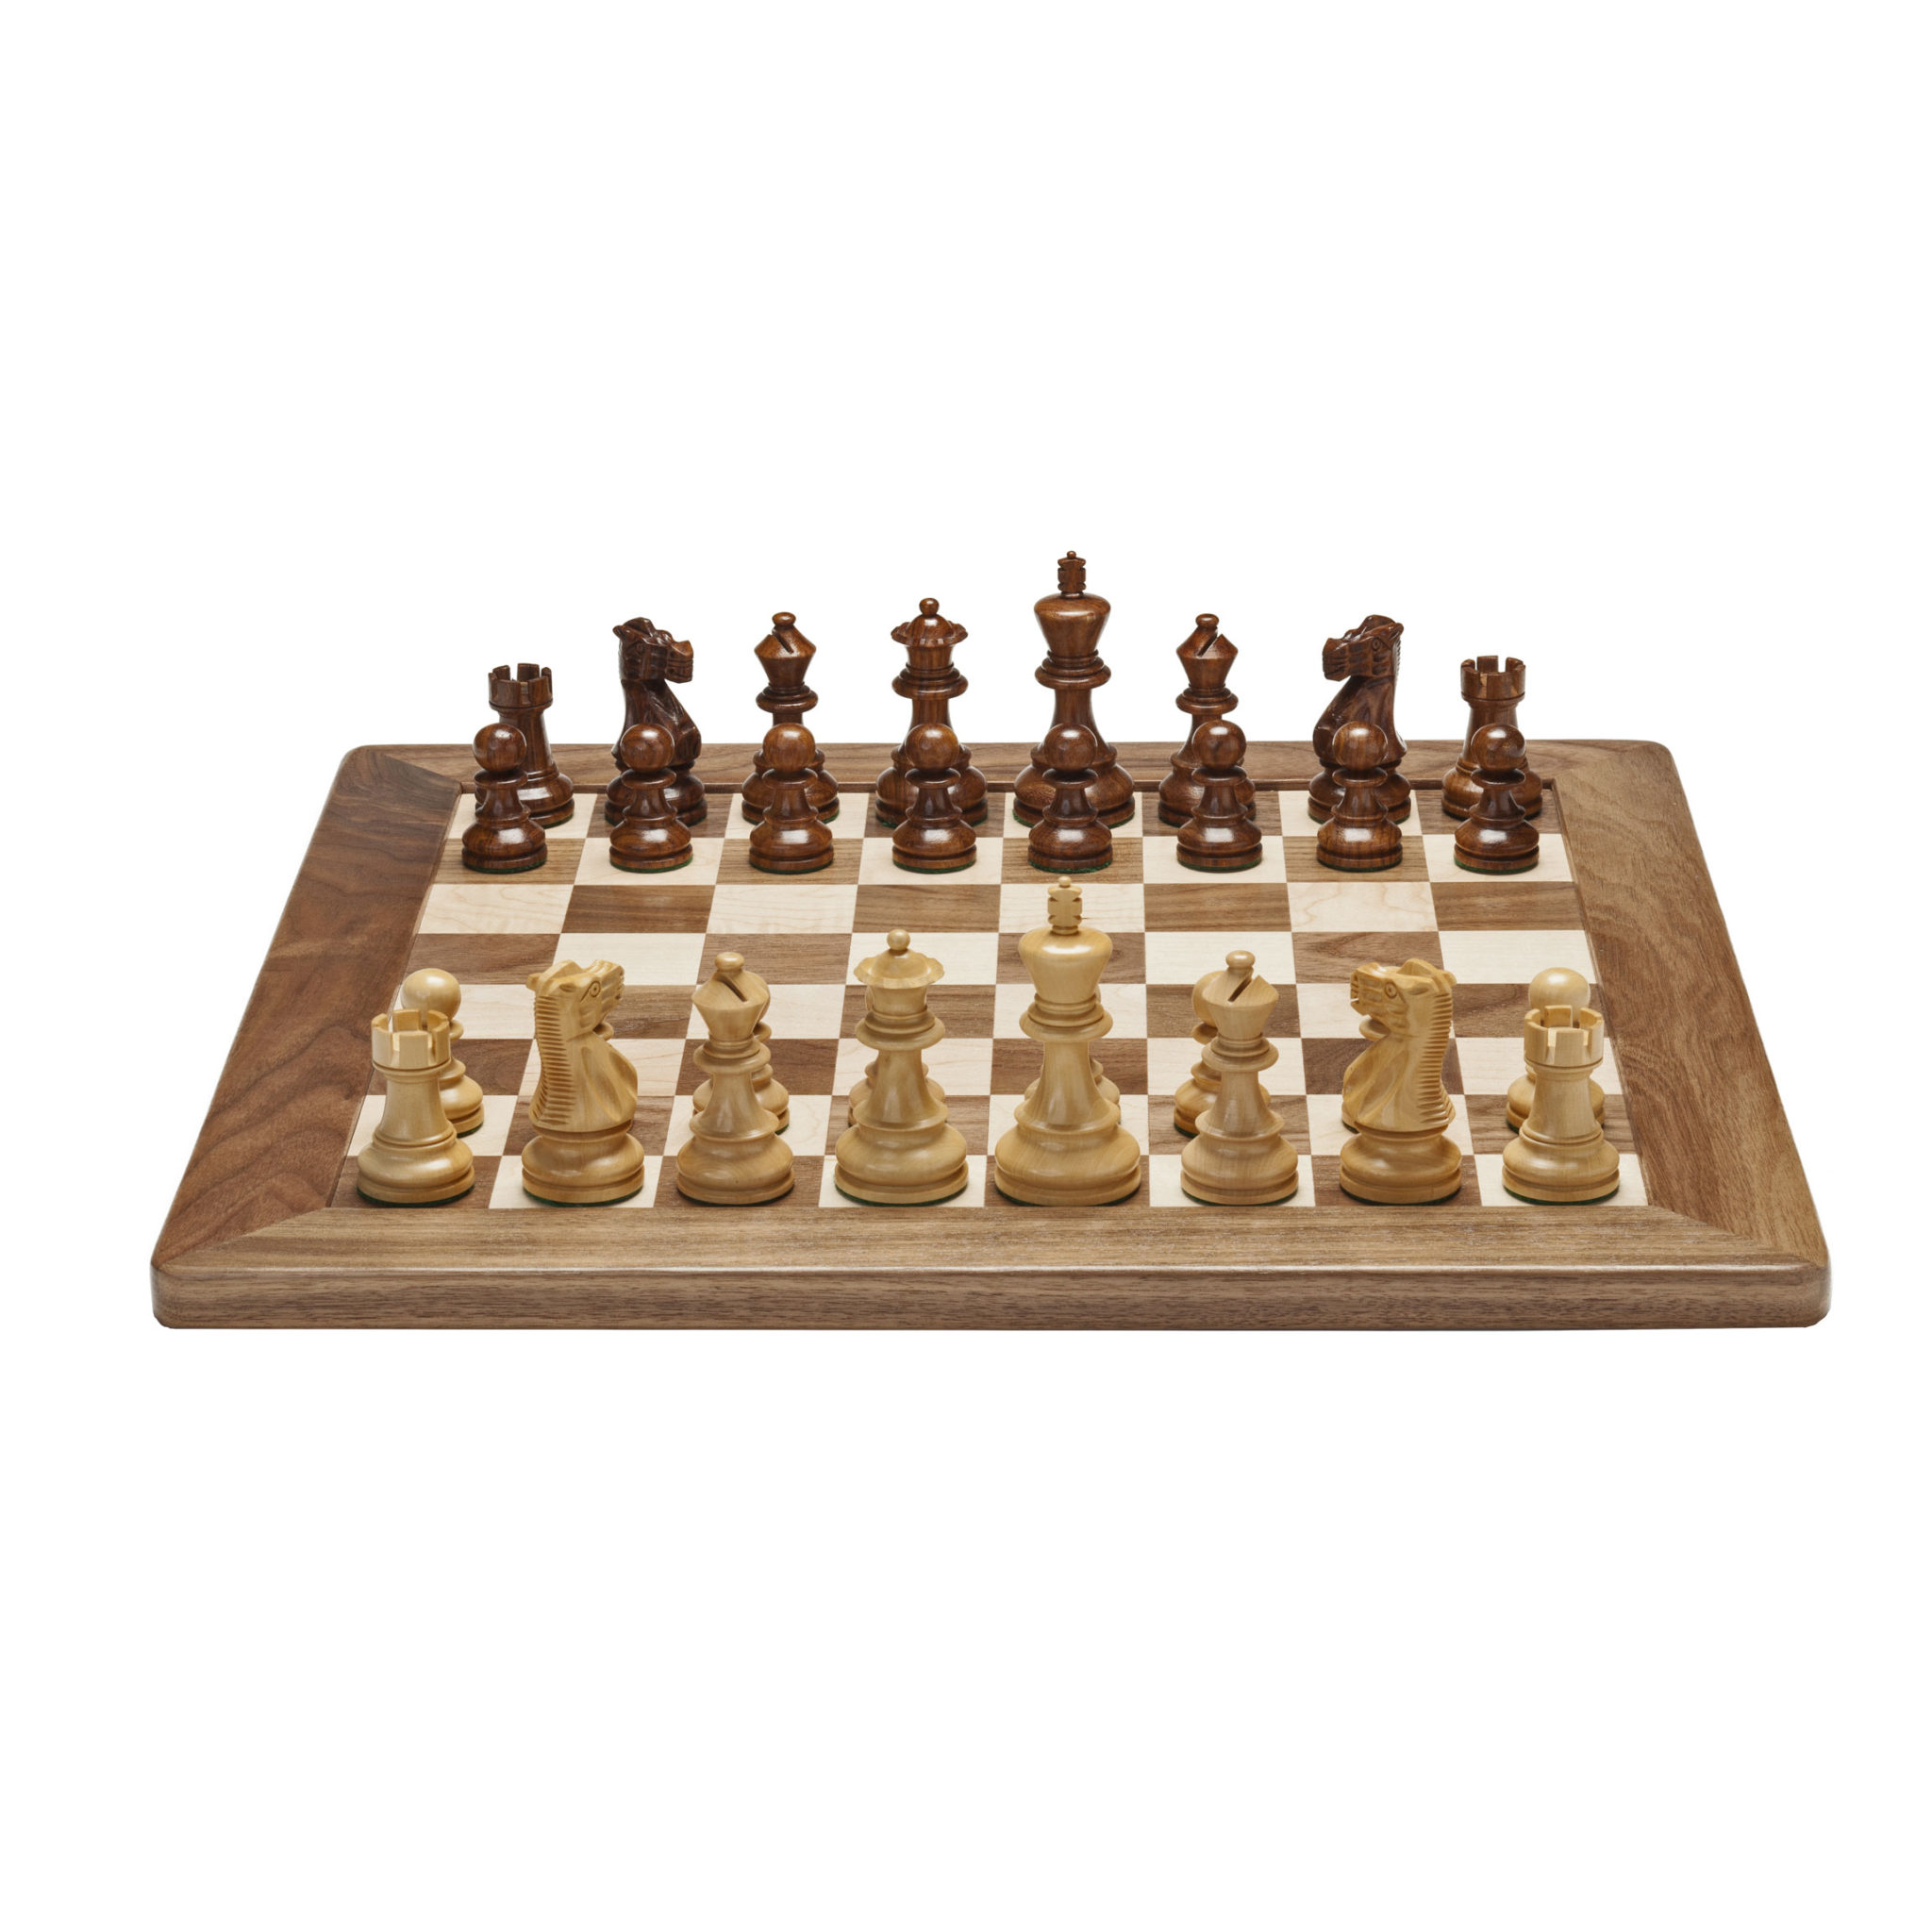 Deluxe english chess set weighted pieces with solid maple walnut wood board 18 in made in - Deluxe chess sets ...